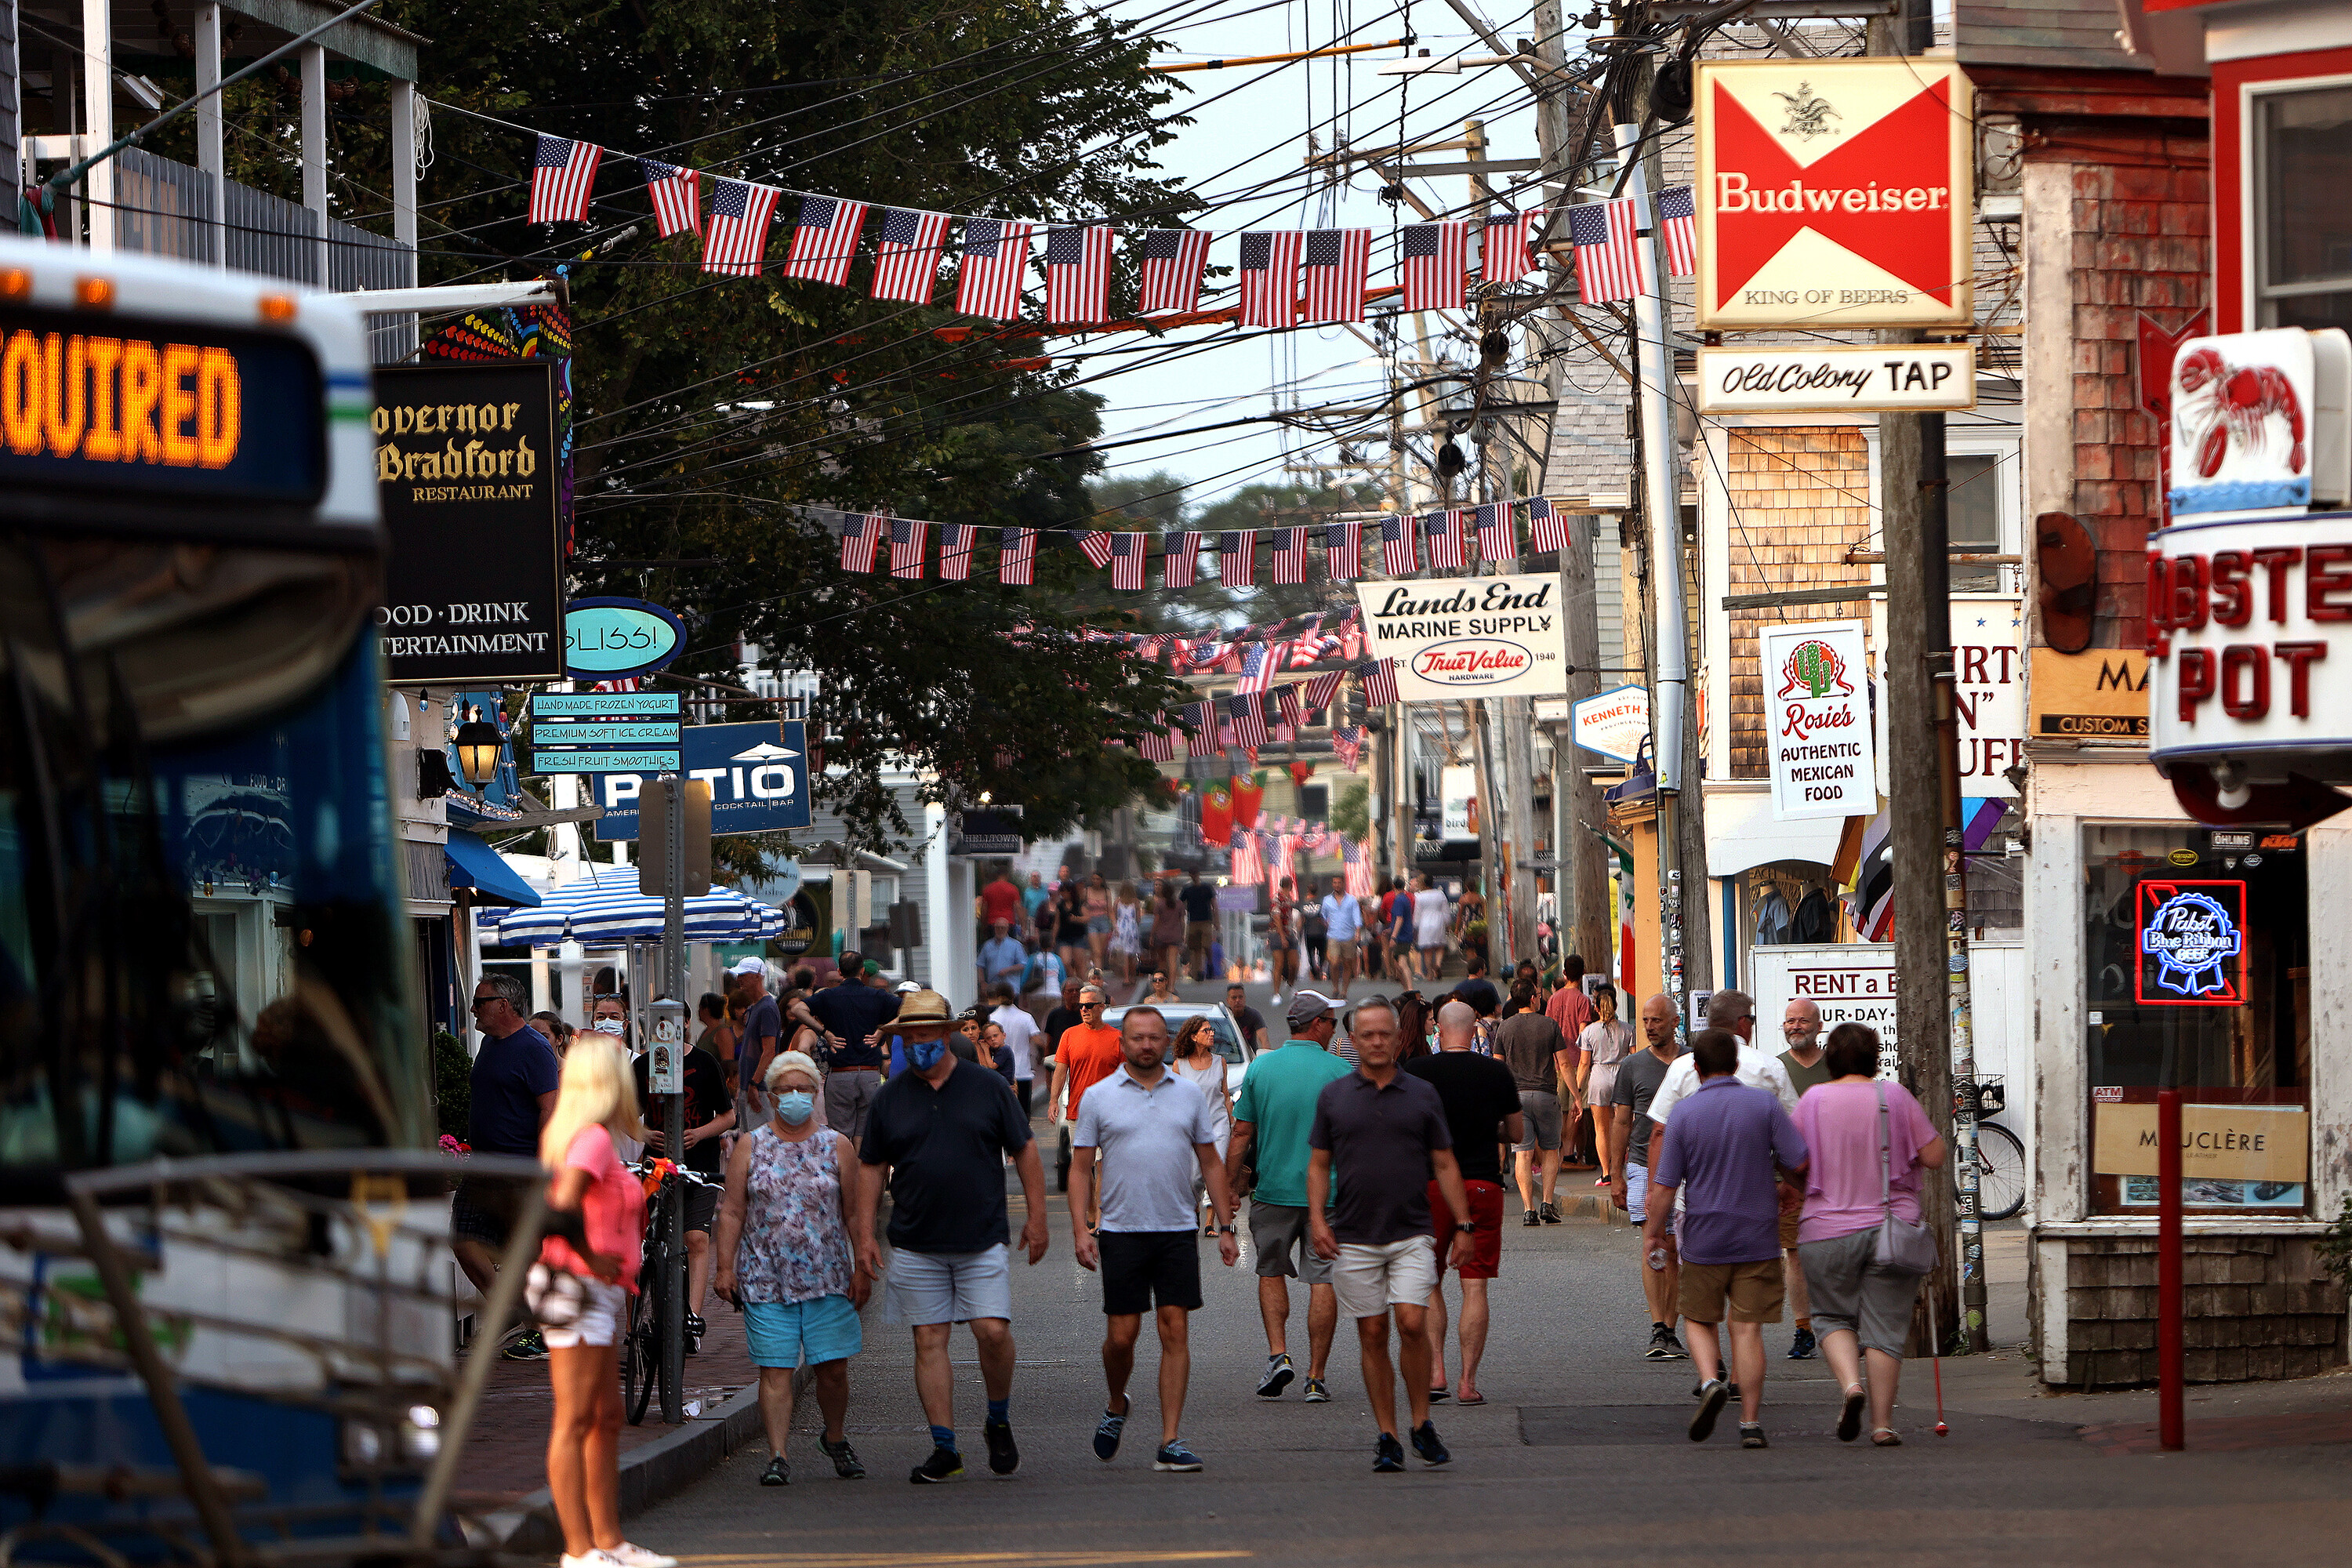 A Covid-19 outbreak in Provincetown helped change the CDC's mask guidance. Here's what residents learned and how they're responding